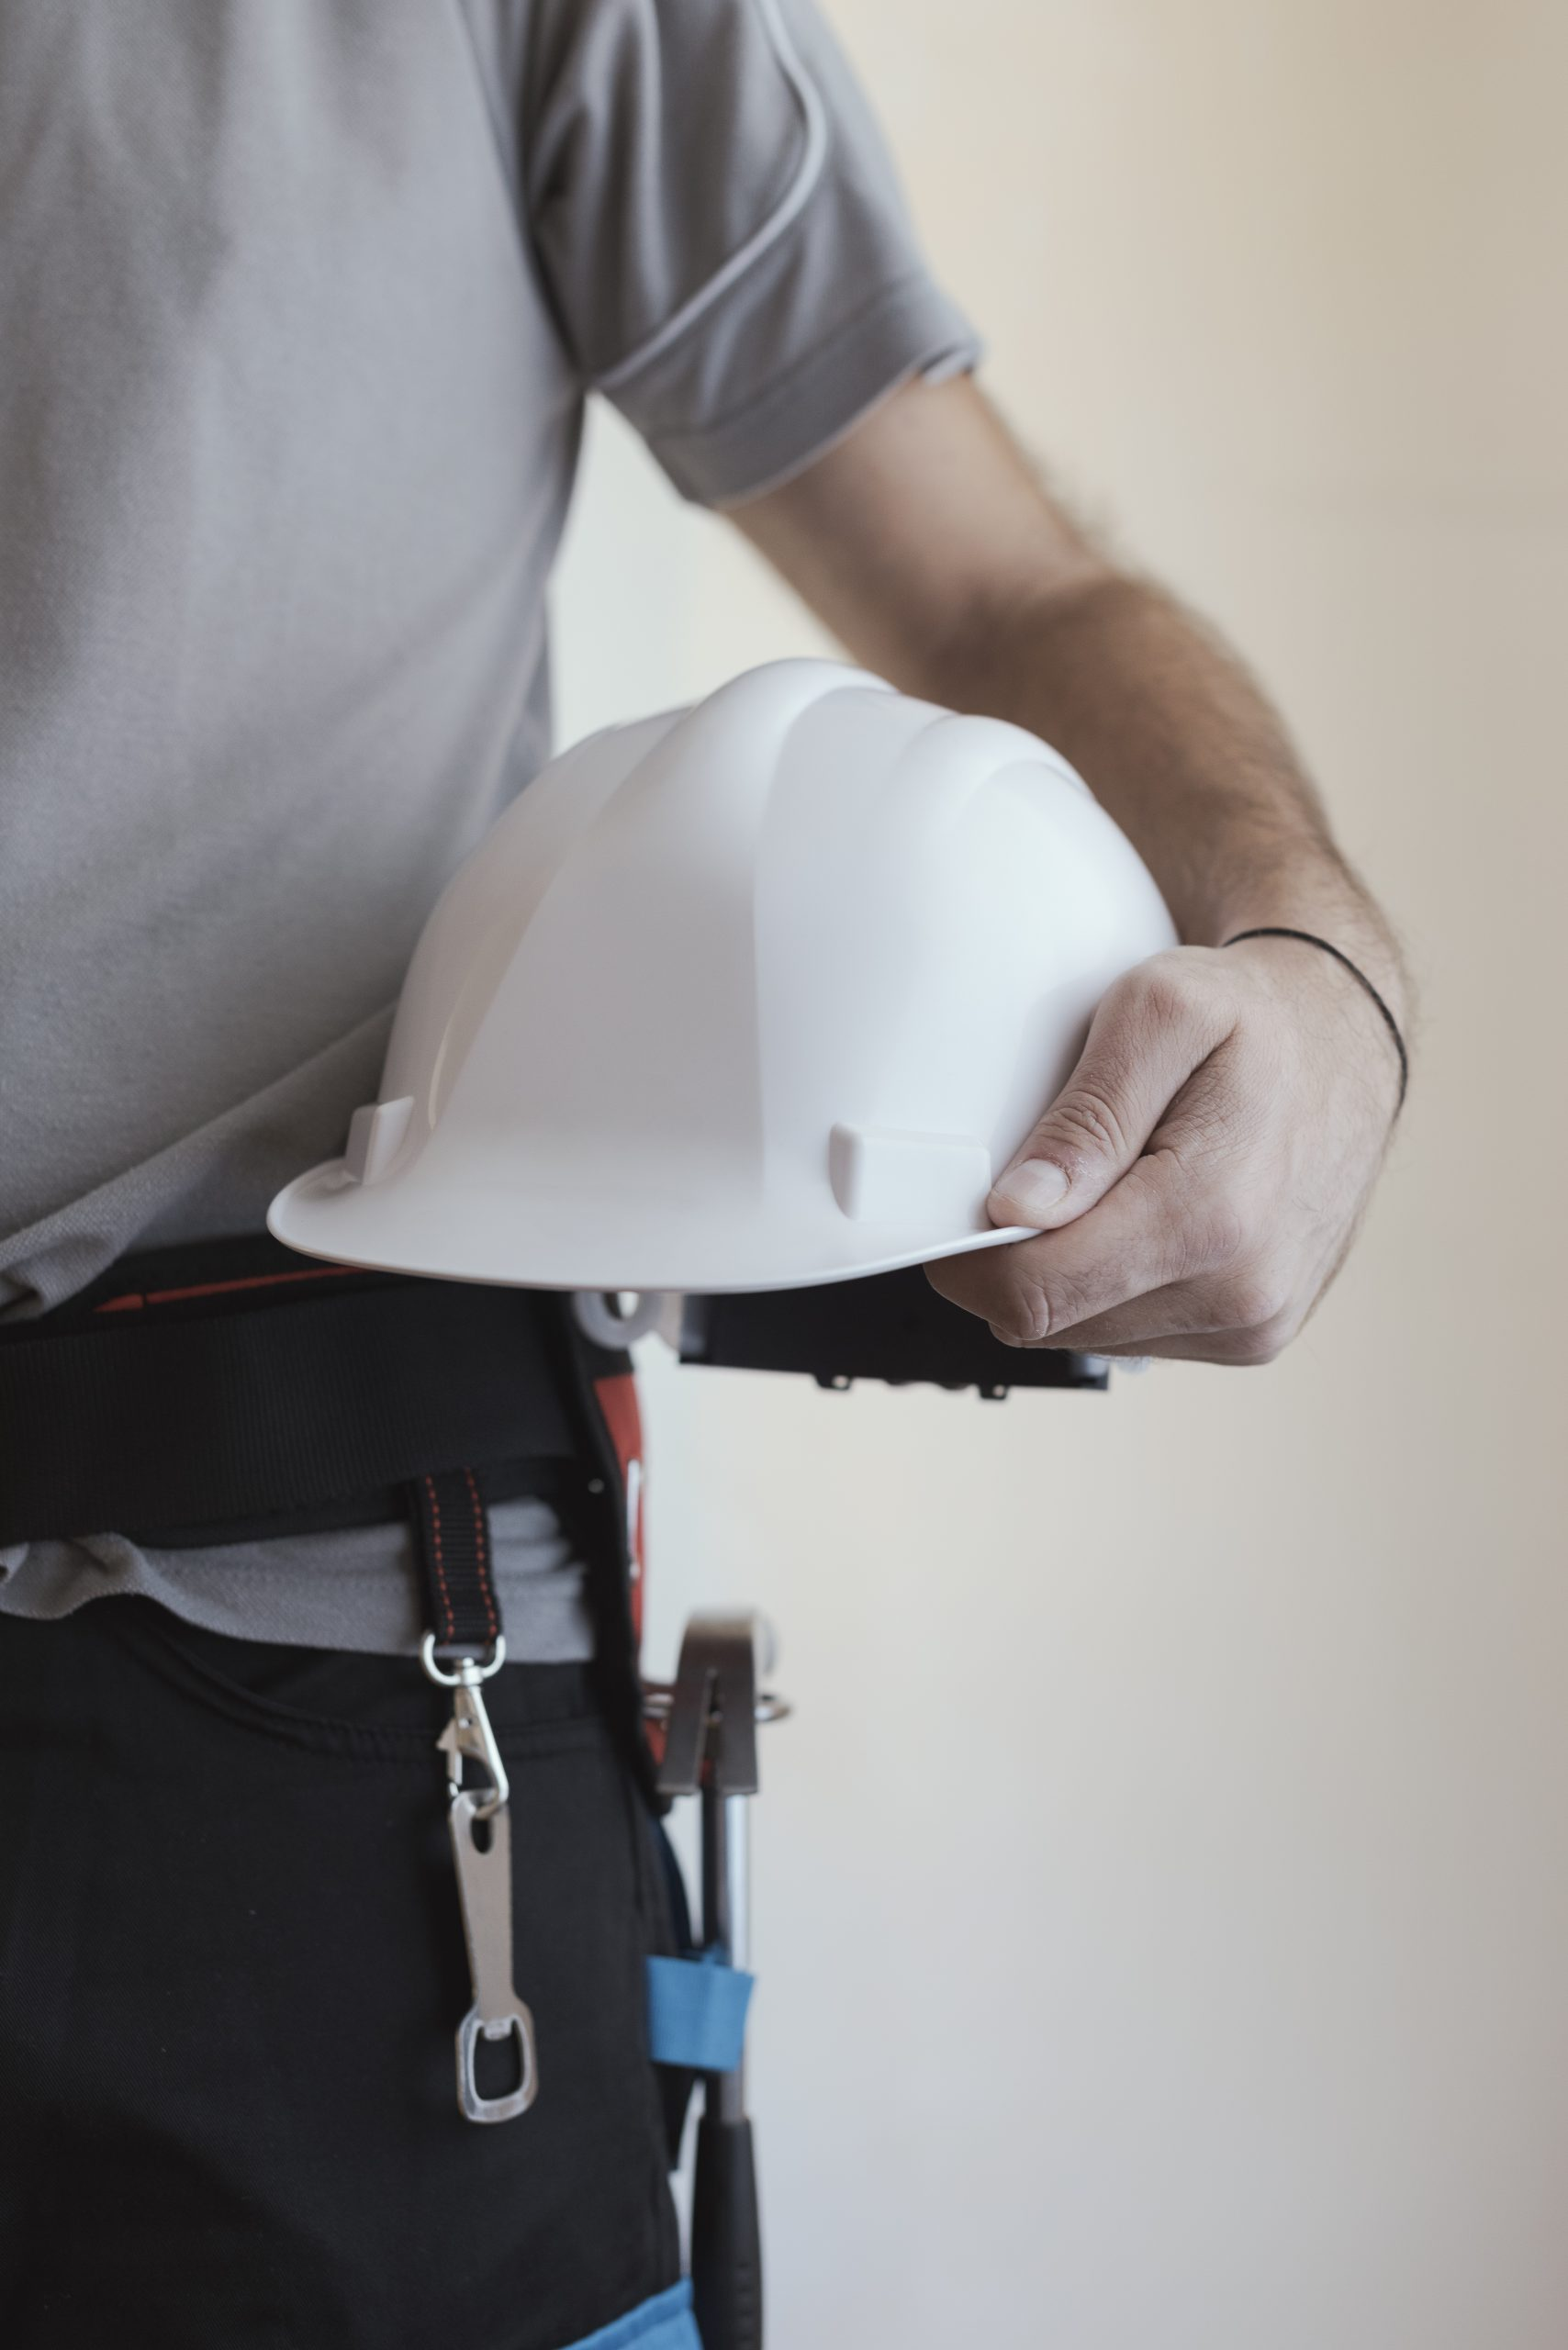 Construction worker holding a safety helmet: construction and workplace safety concept